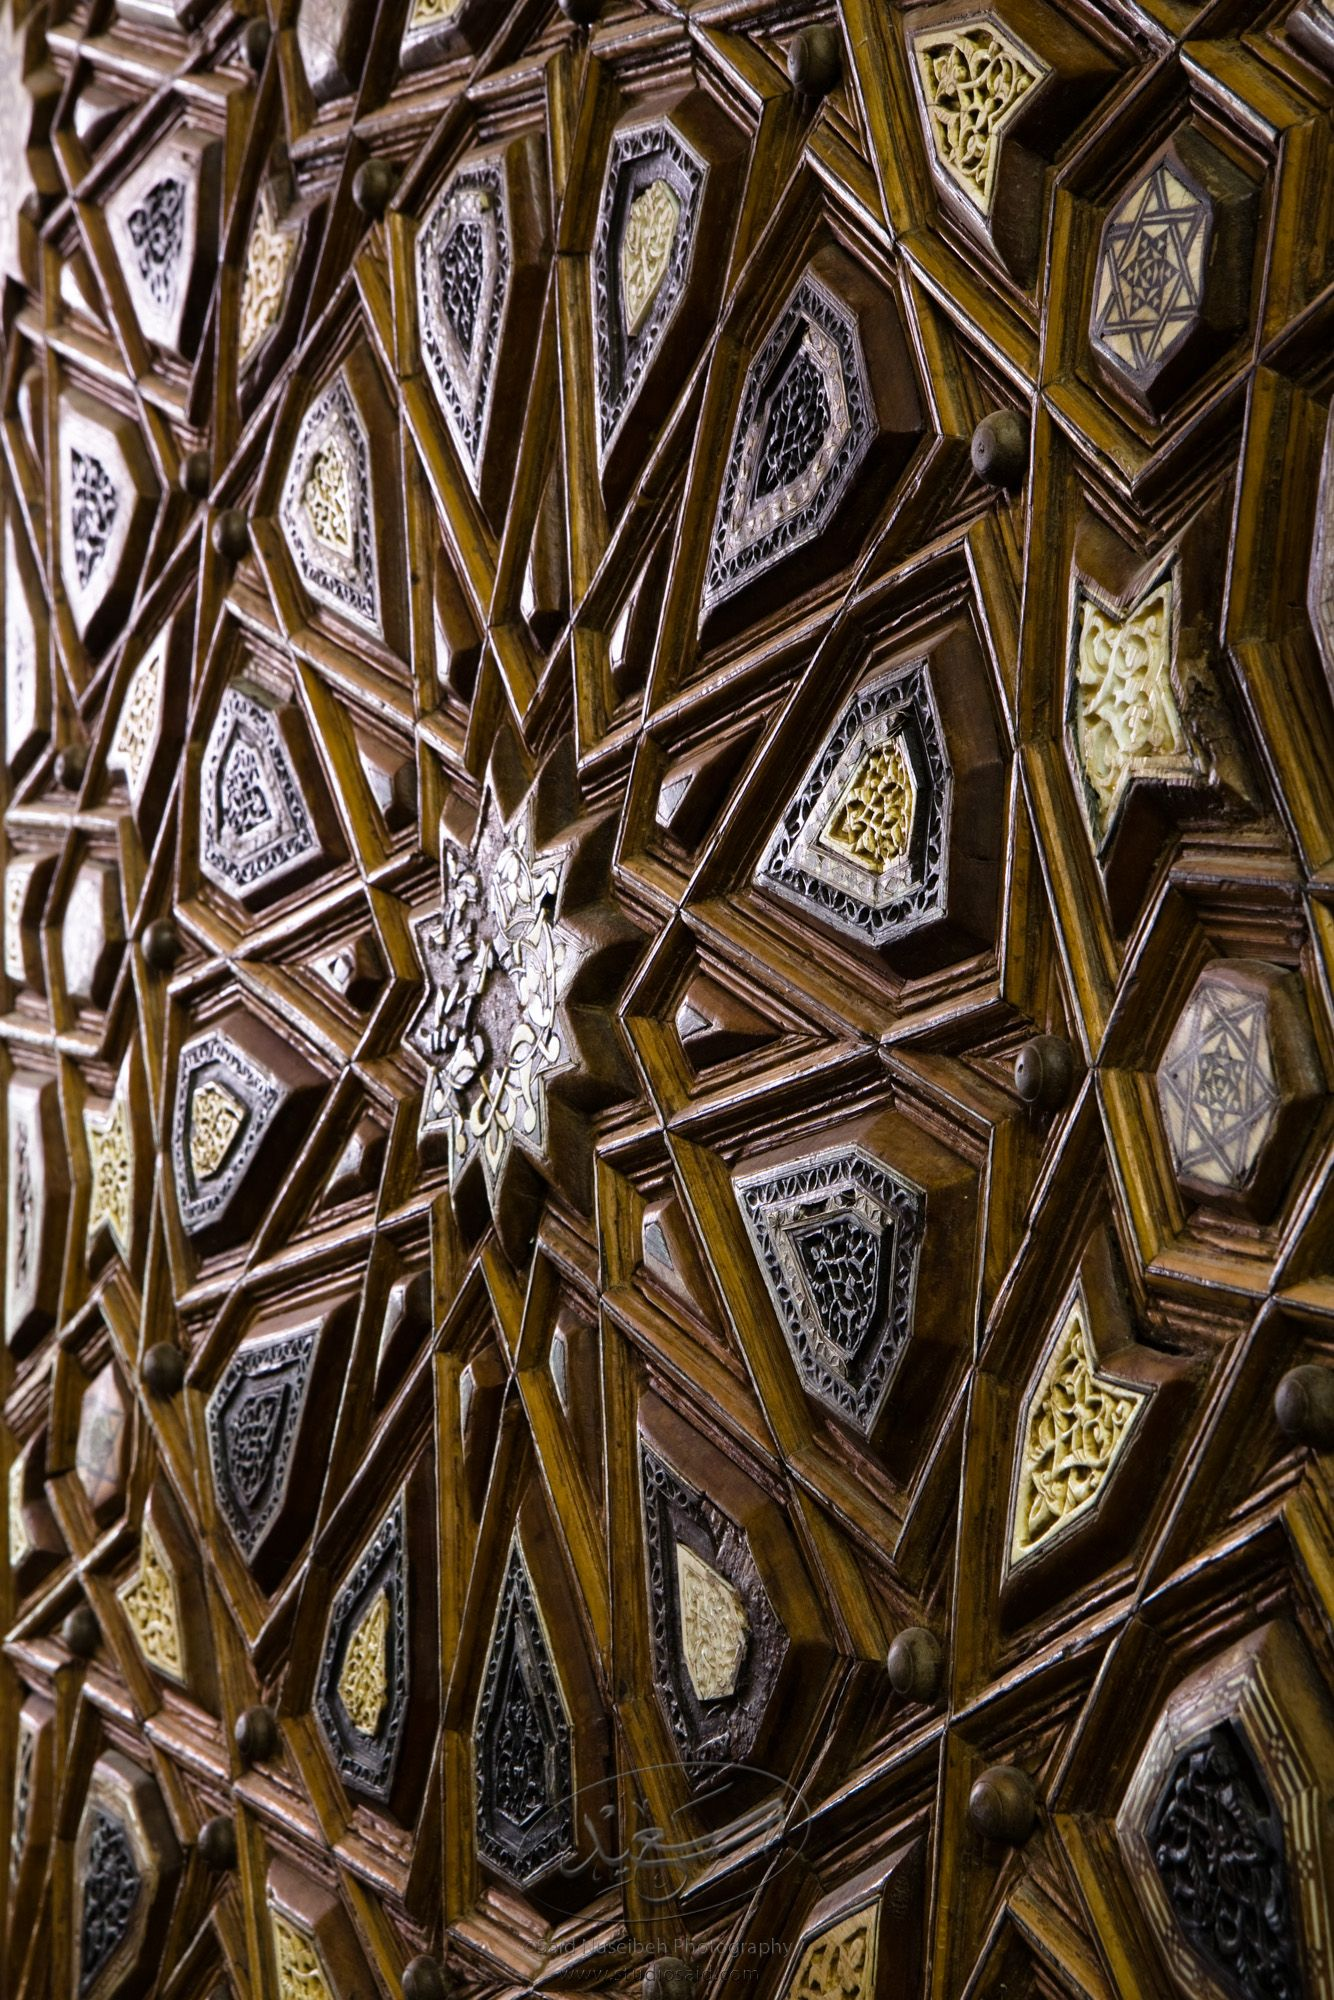 """Dodecagons. Minbar, Carved Woodwork and Inlay Detail""The late-13th / early-14th c. Mamluk minbar, or pulpit, of Sultan al-Nasir Muhammad, the ninth Mamluk Sultan from Cairo and son of Qalawun. The minbar was located in the Umayyad Mosque in Aleppo, Haleb, prior to its damage and disappearance in May 2013."